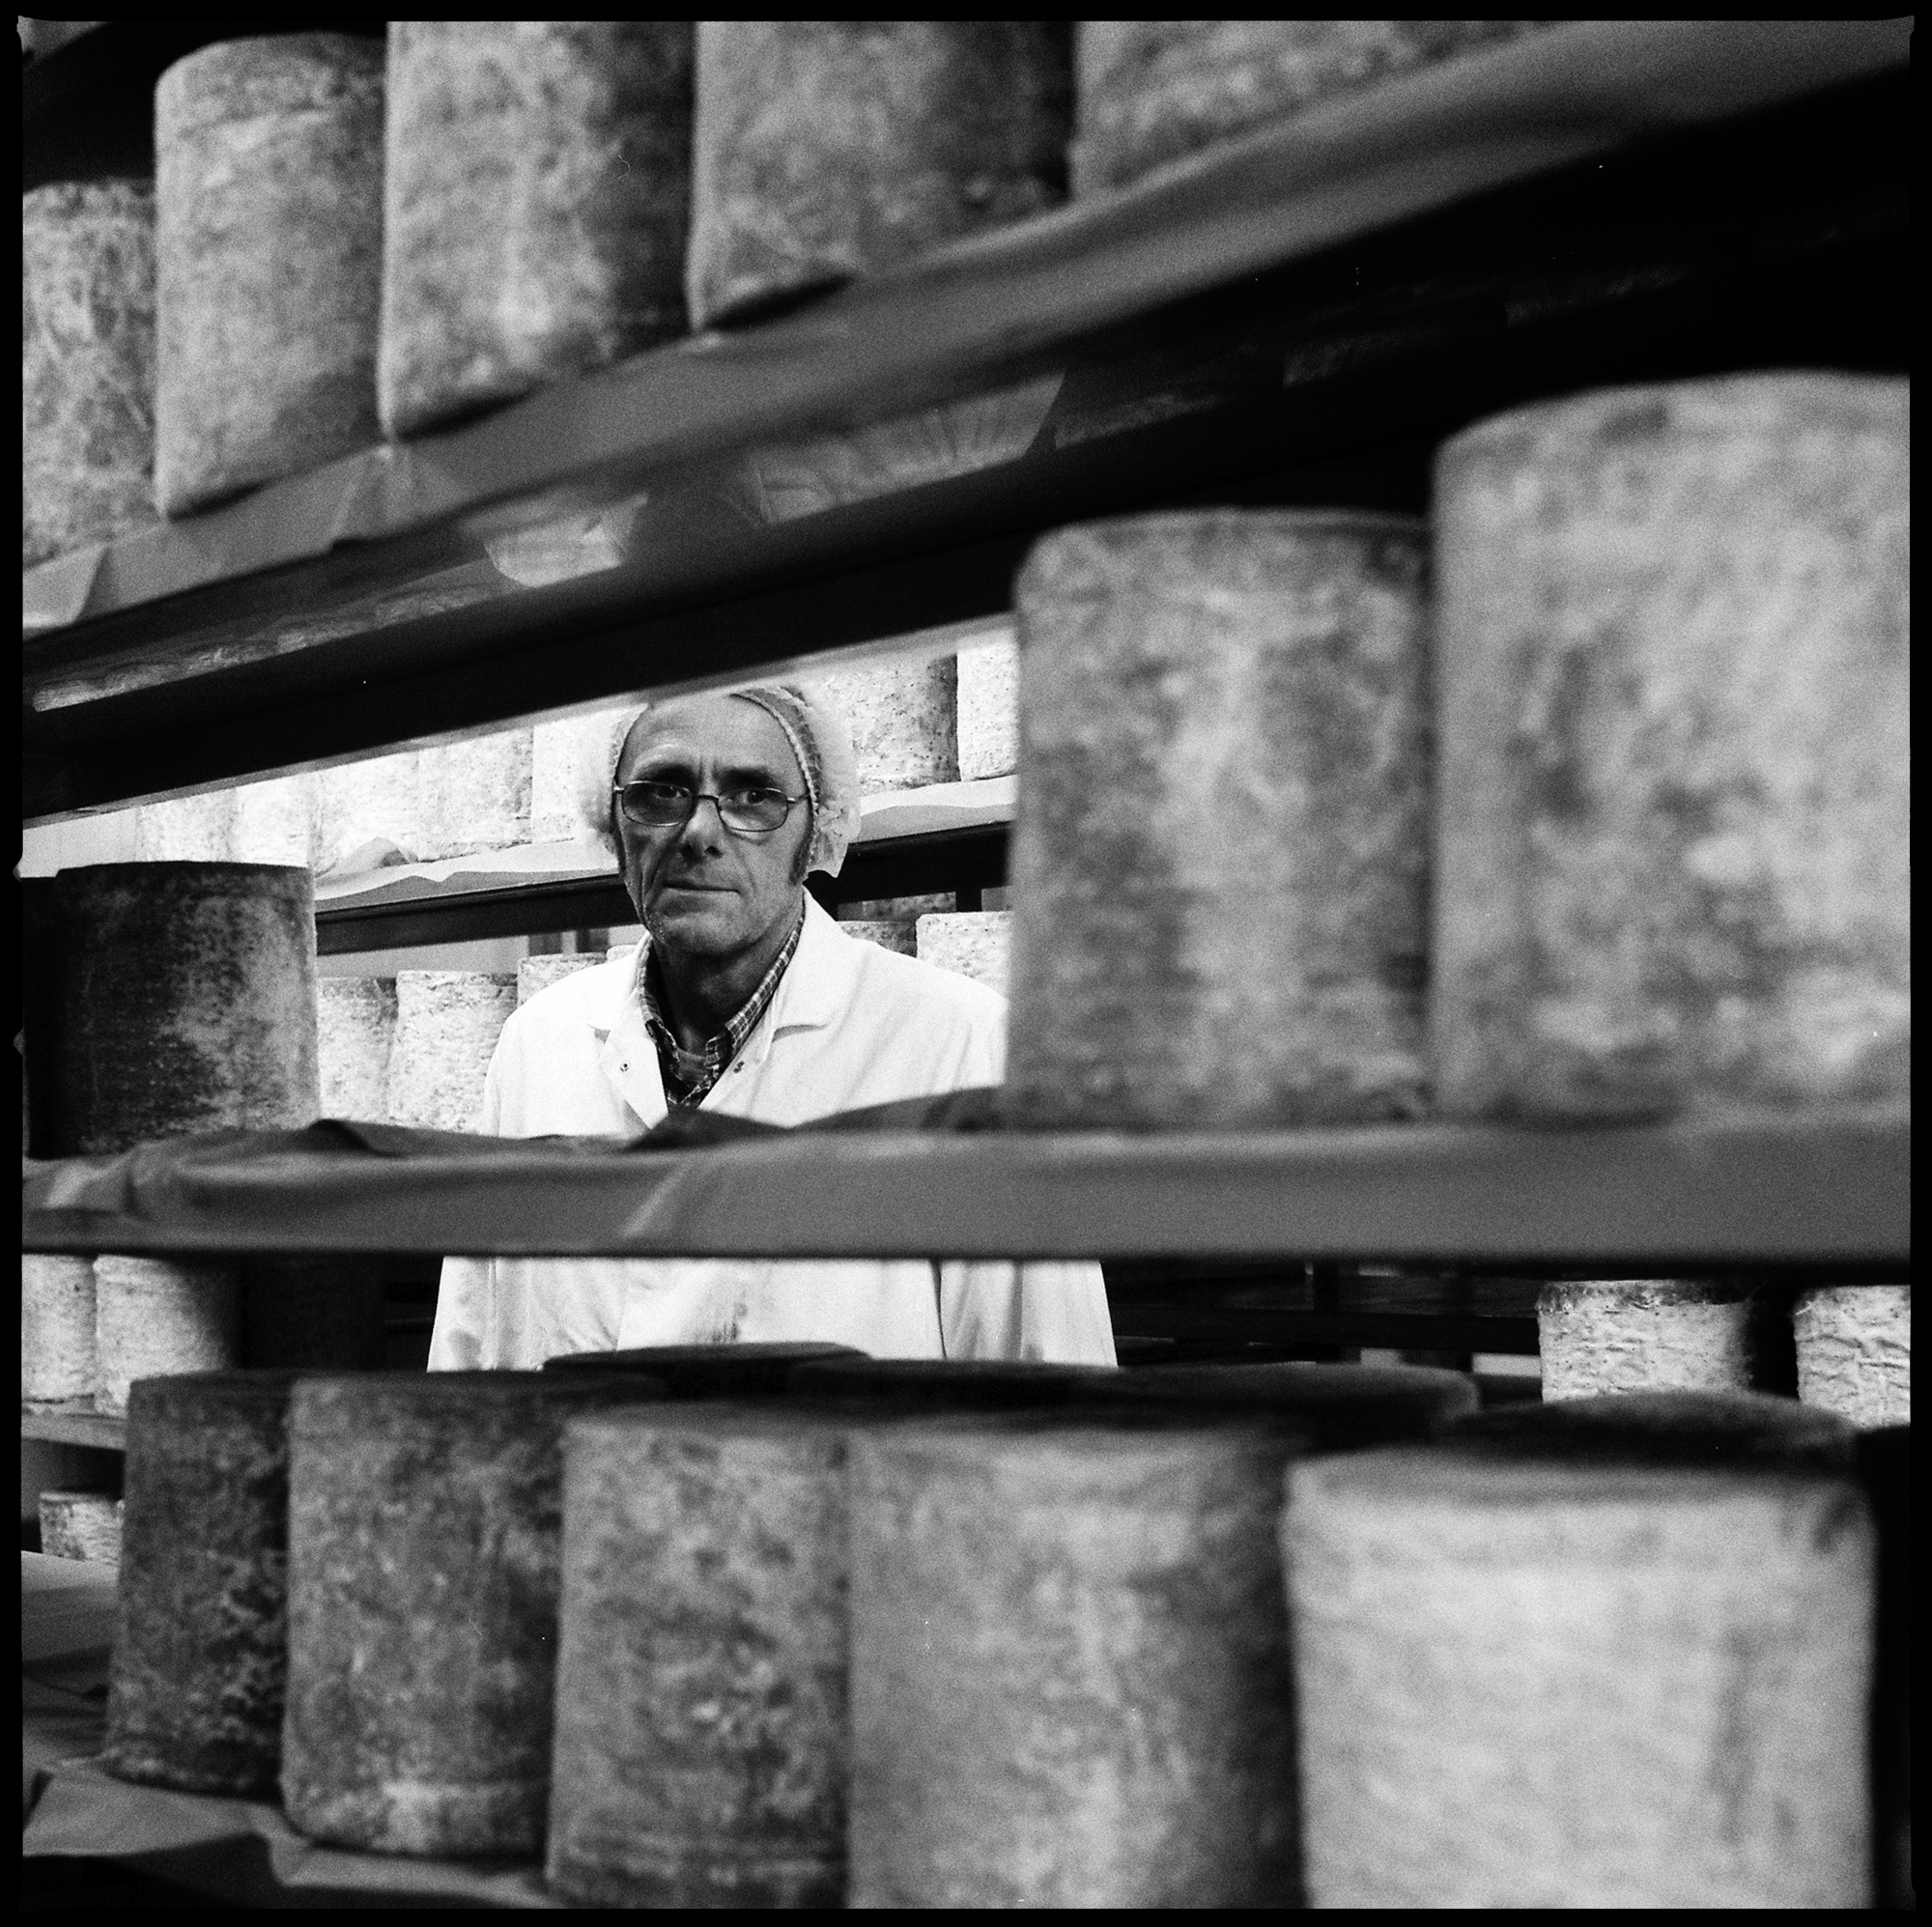 Graeme Stamps, Cheesemaker